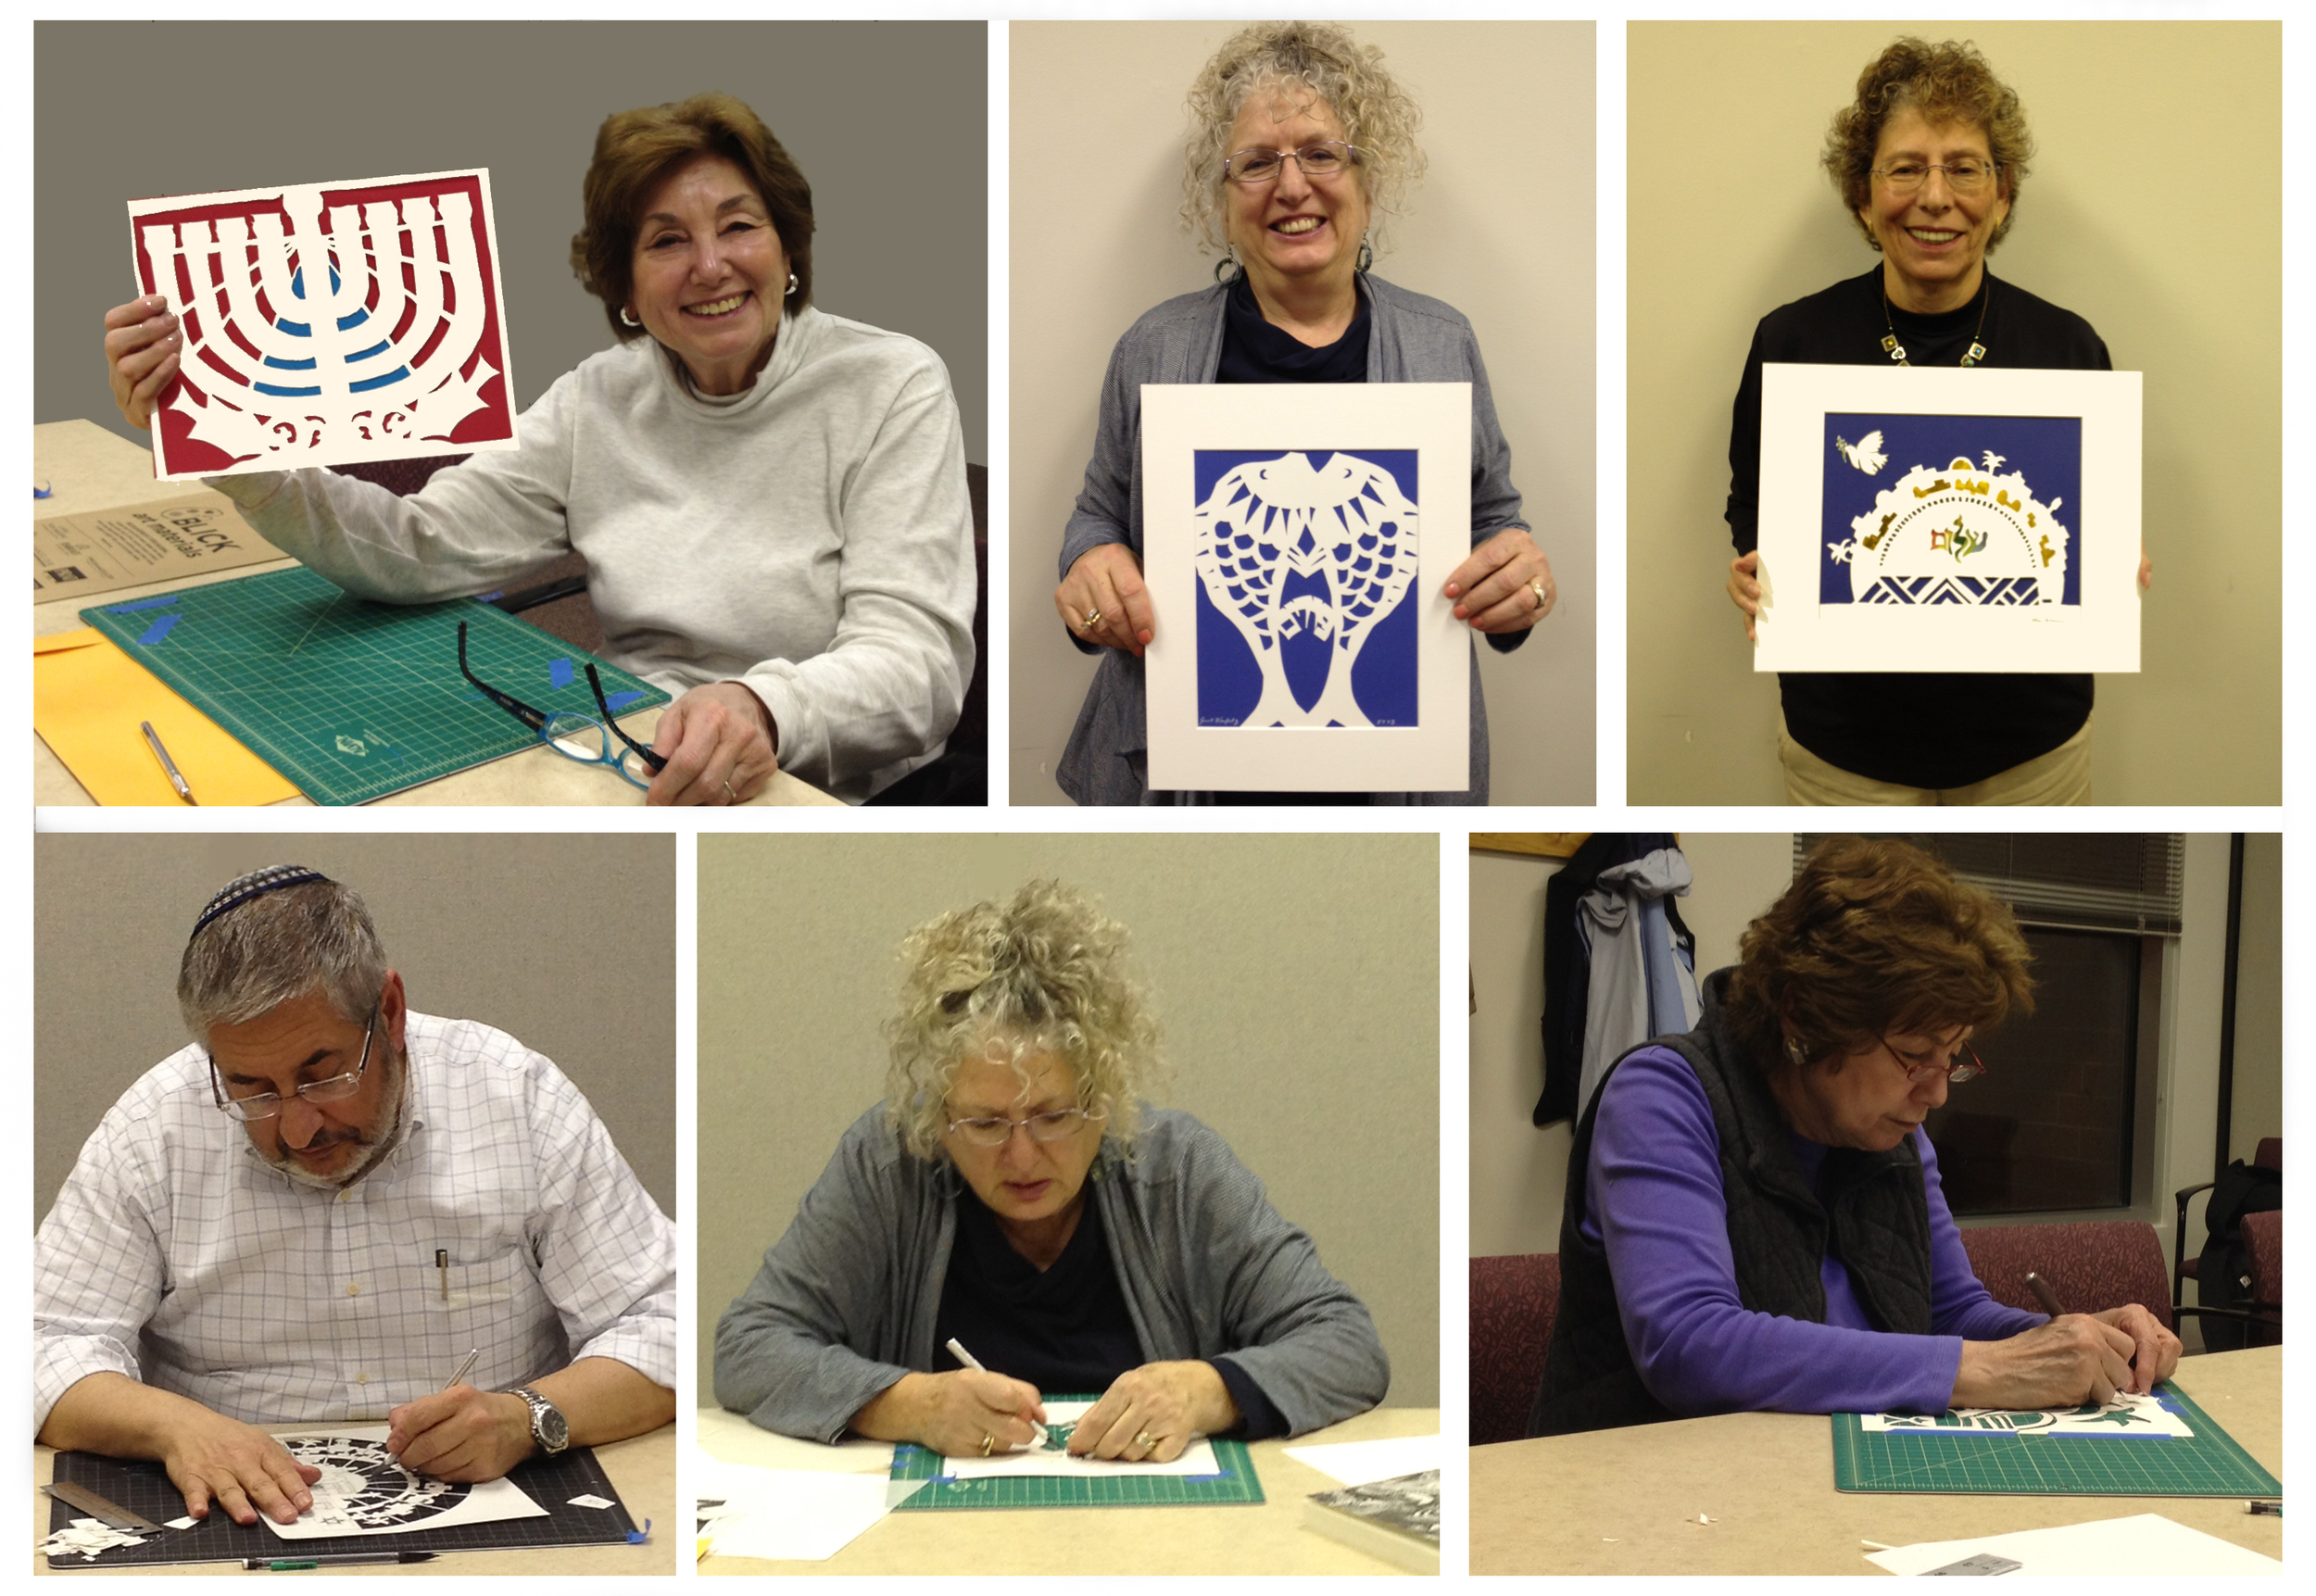 Jewish Papercut Arts class  taught by Shifra Whiteman. Chicago. Fall 2012.